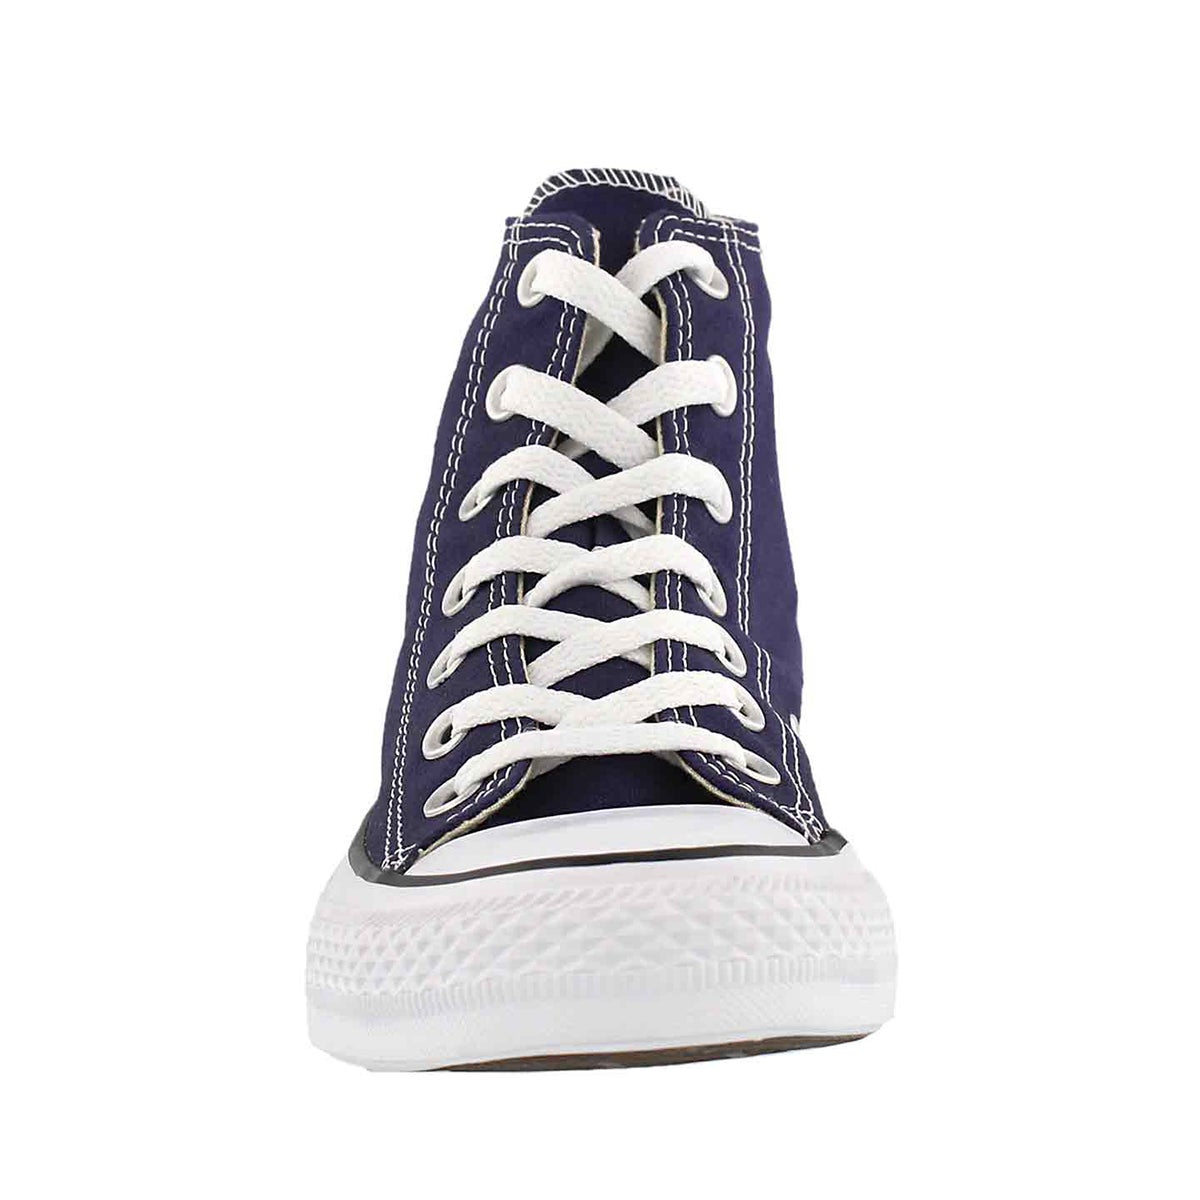 Lds CT A/S Seasonal mdnt indigo hi top